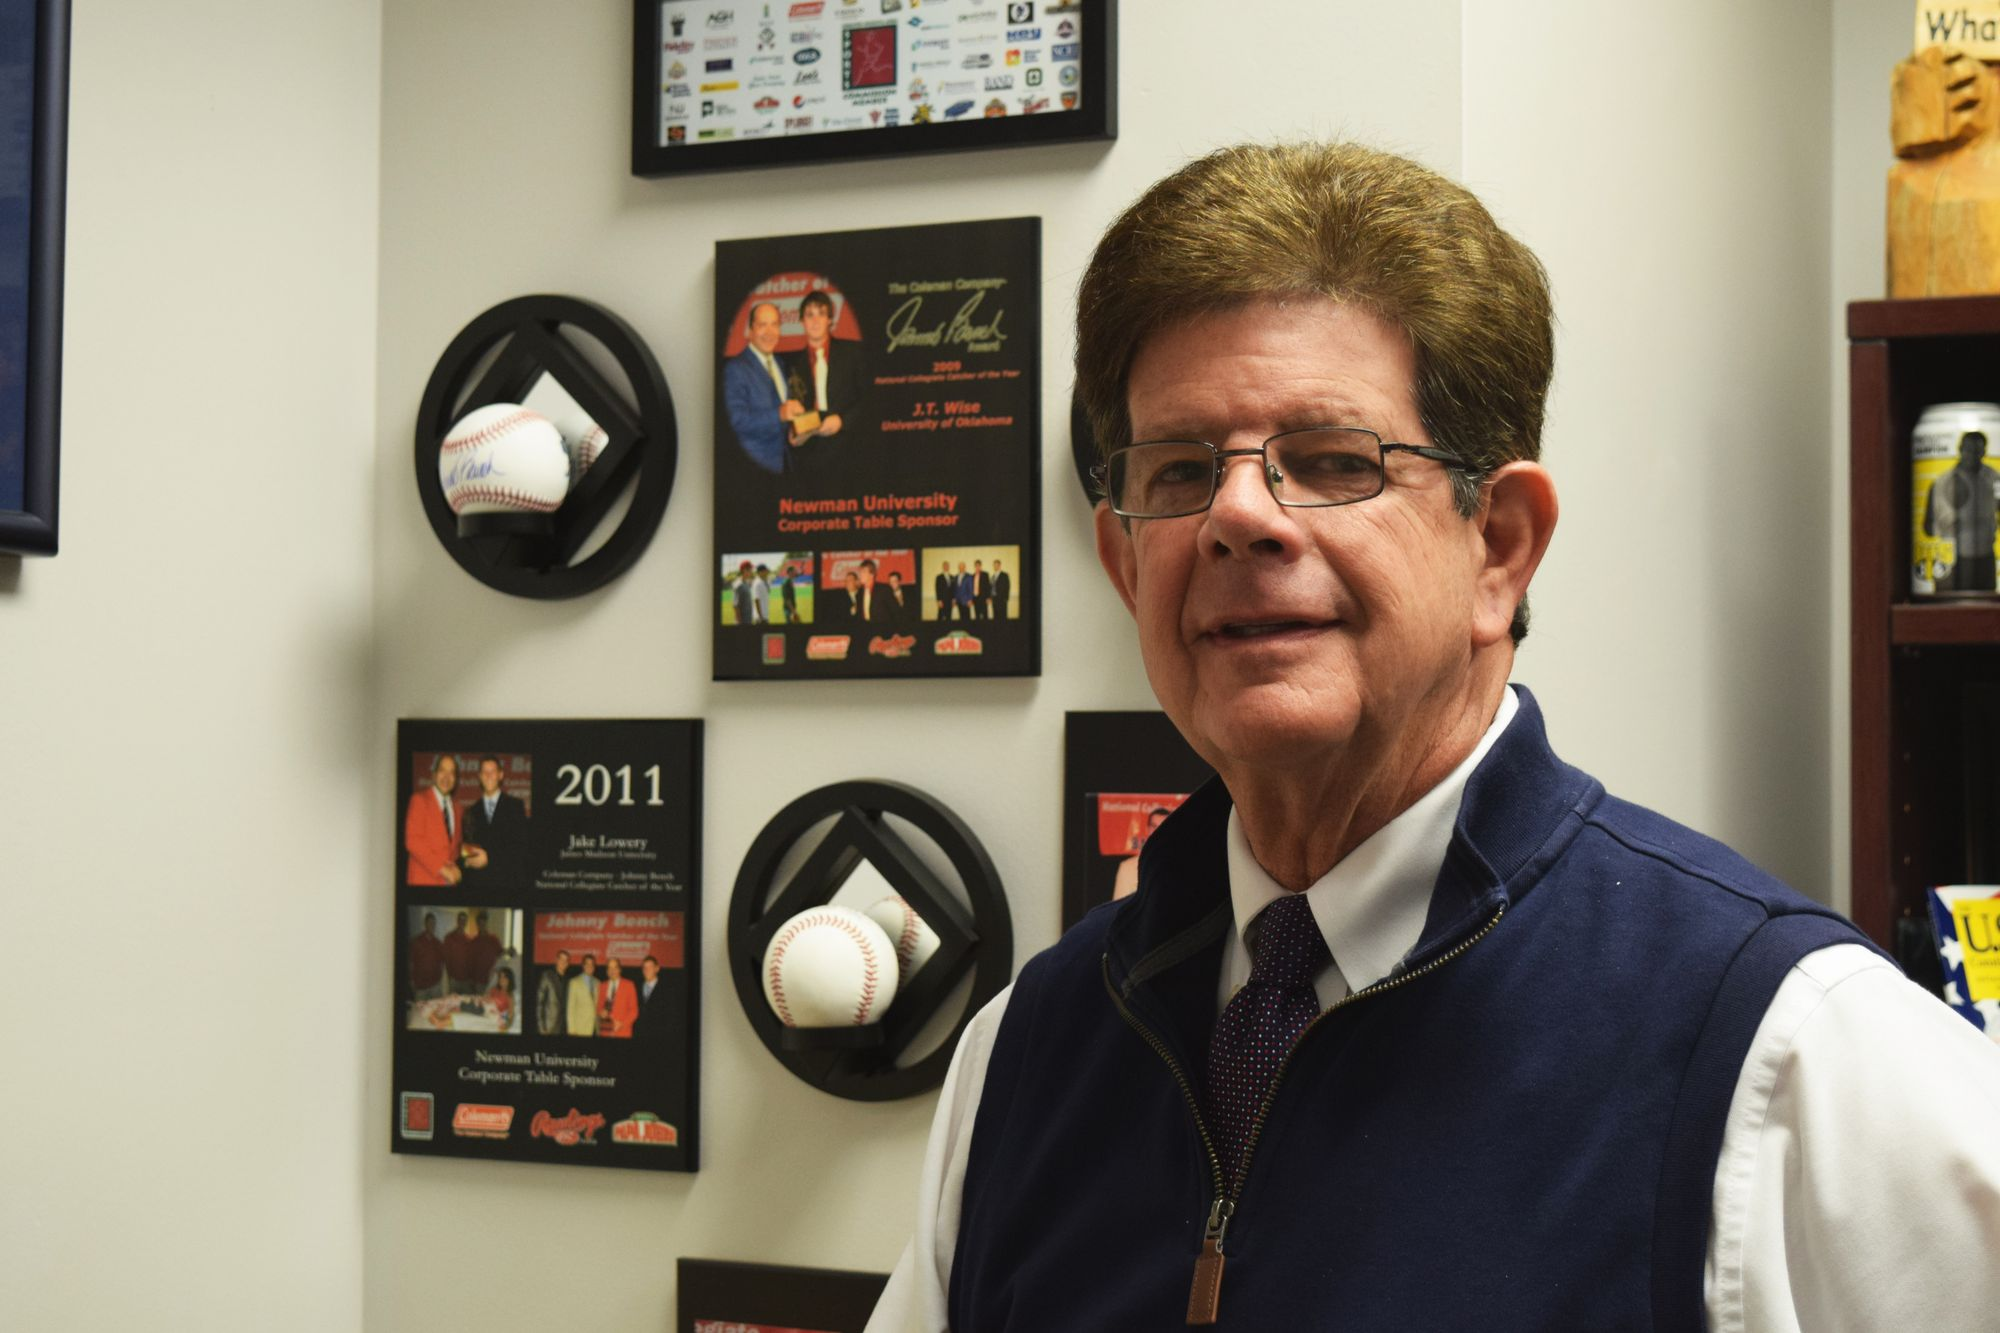 Longtime athletic director announces retirement